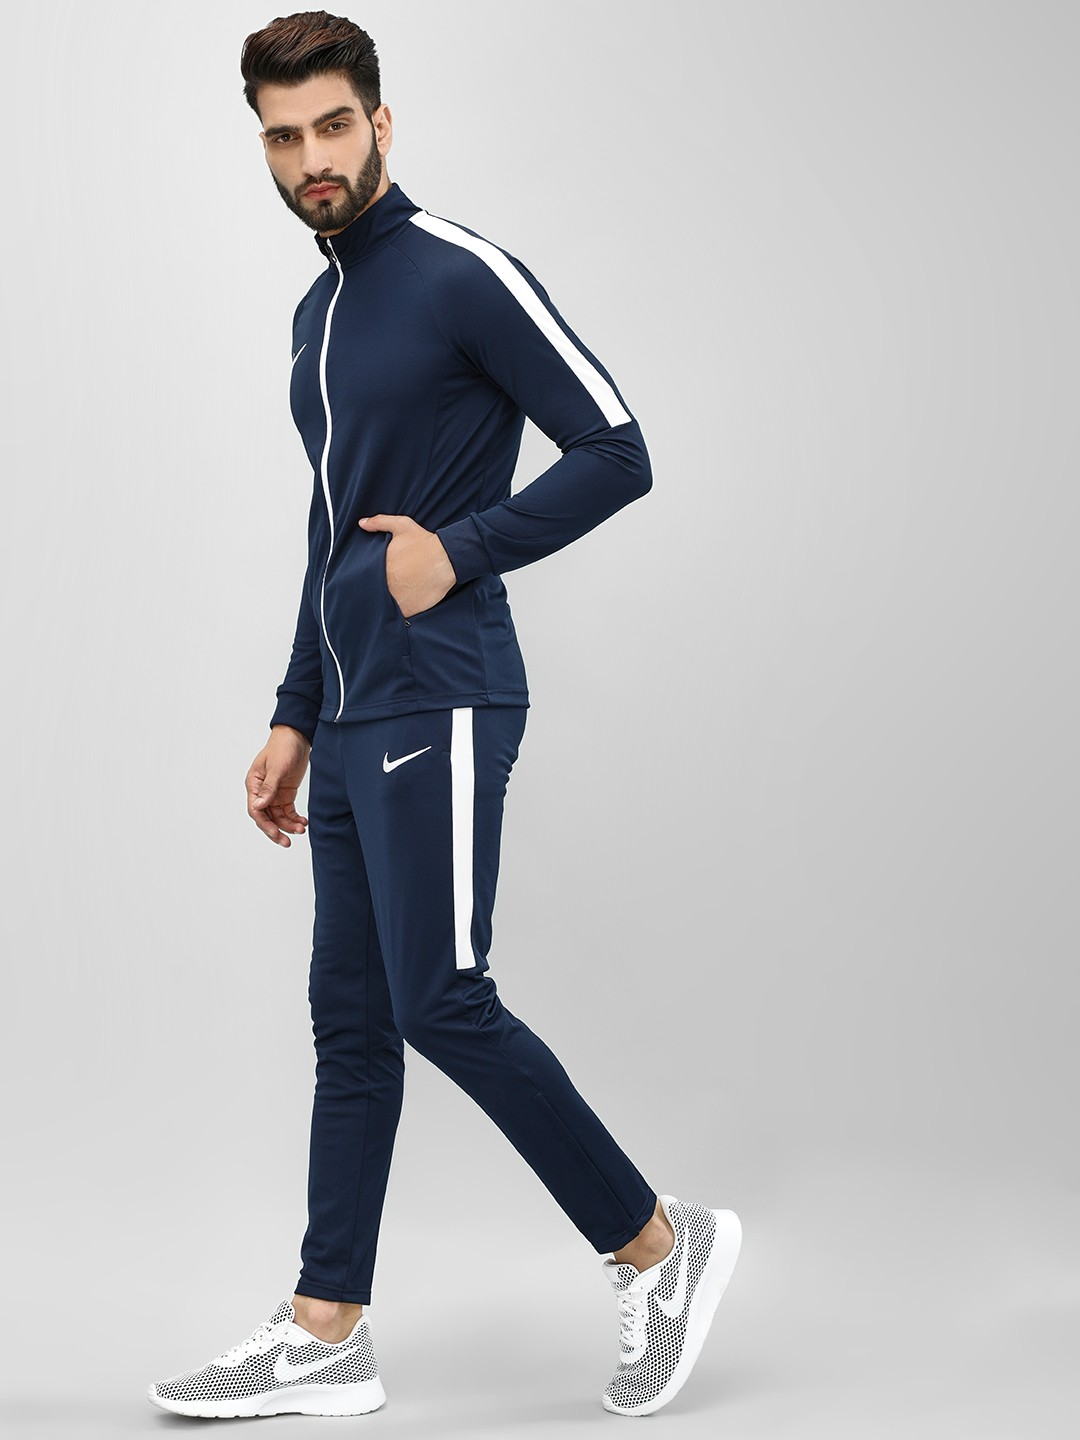 Nike Navy Dry Academy K Track Suit 1